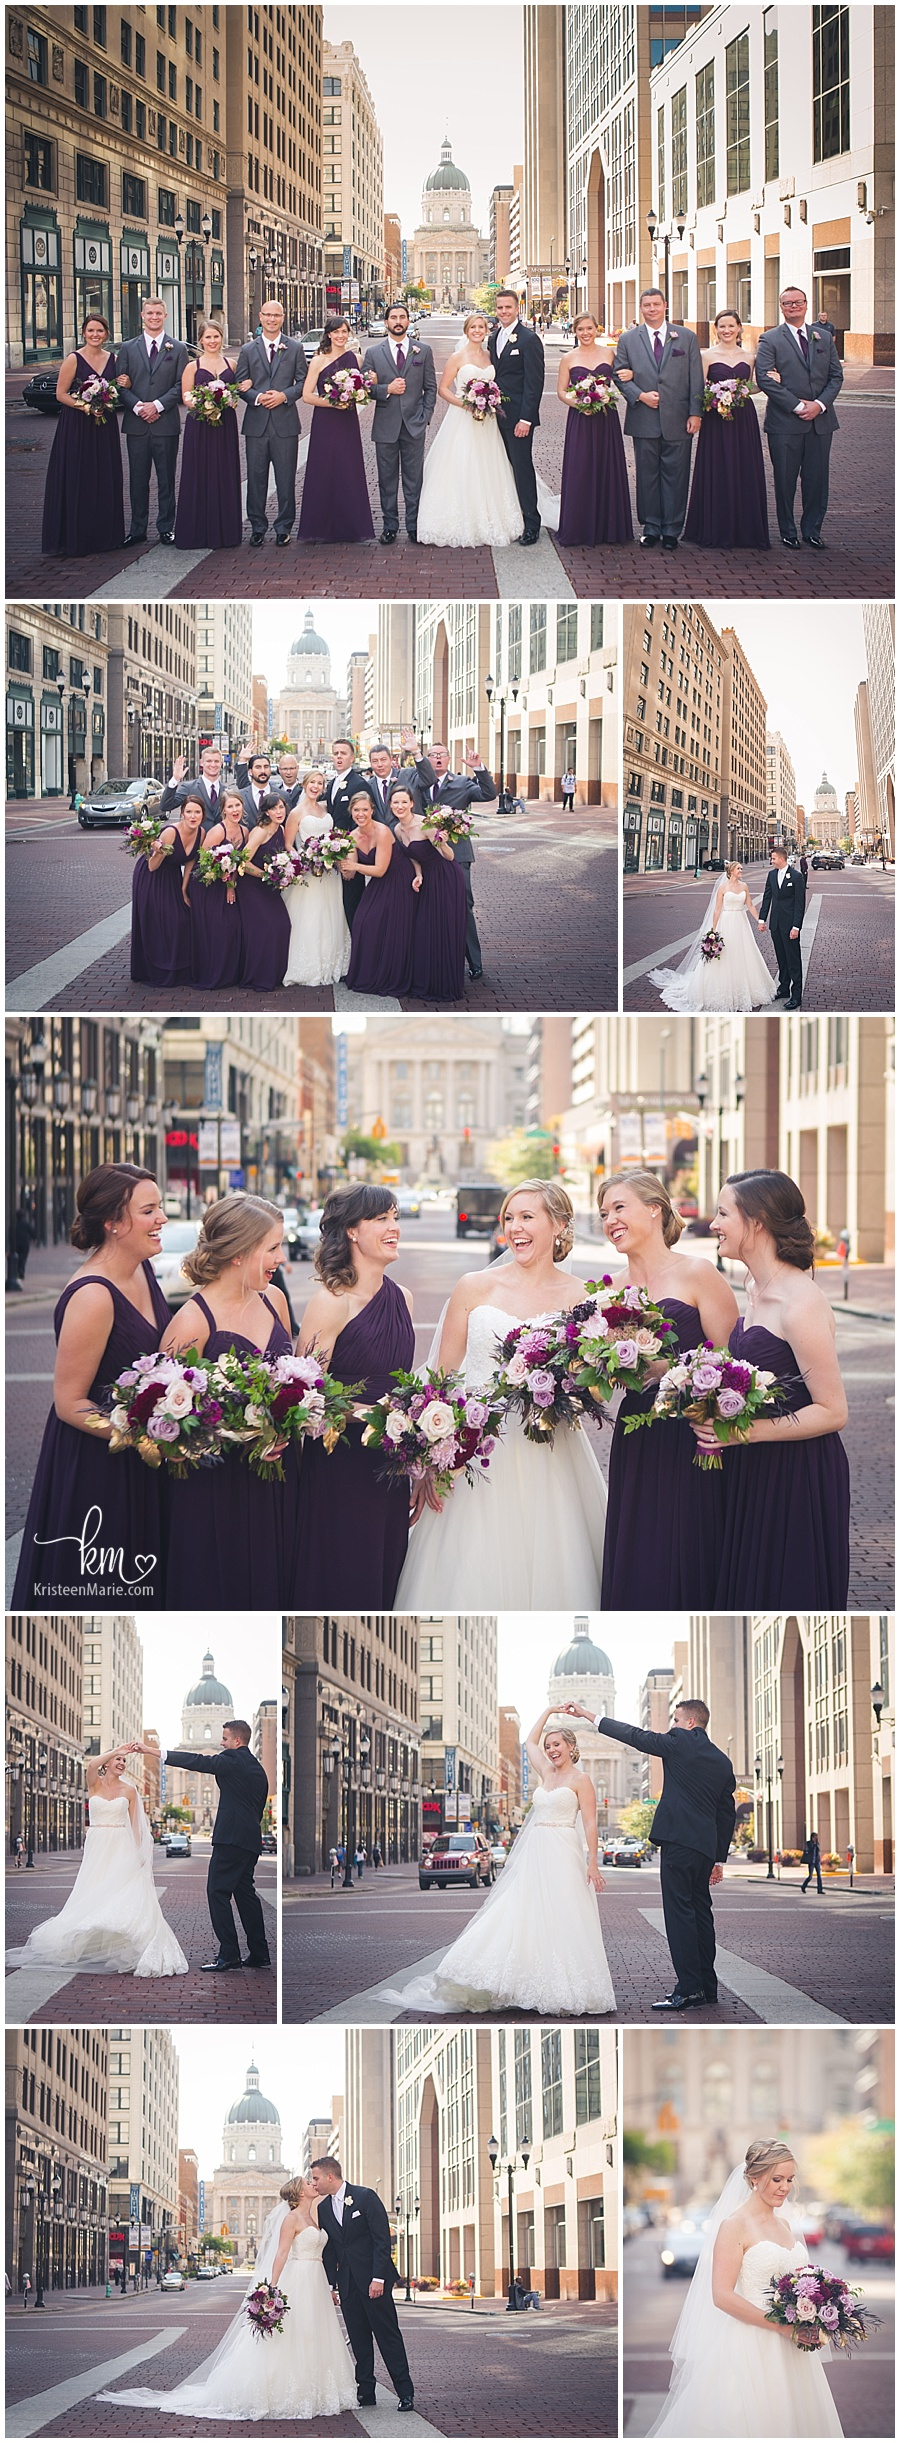 wedding photography downtown Indianapolis, IN - state house in background